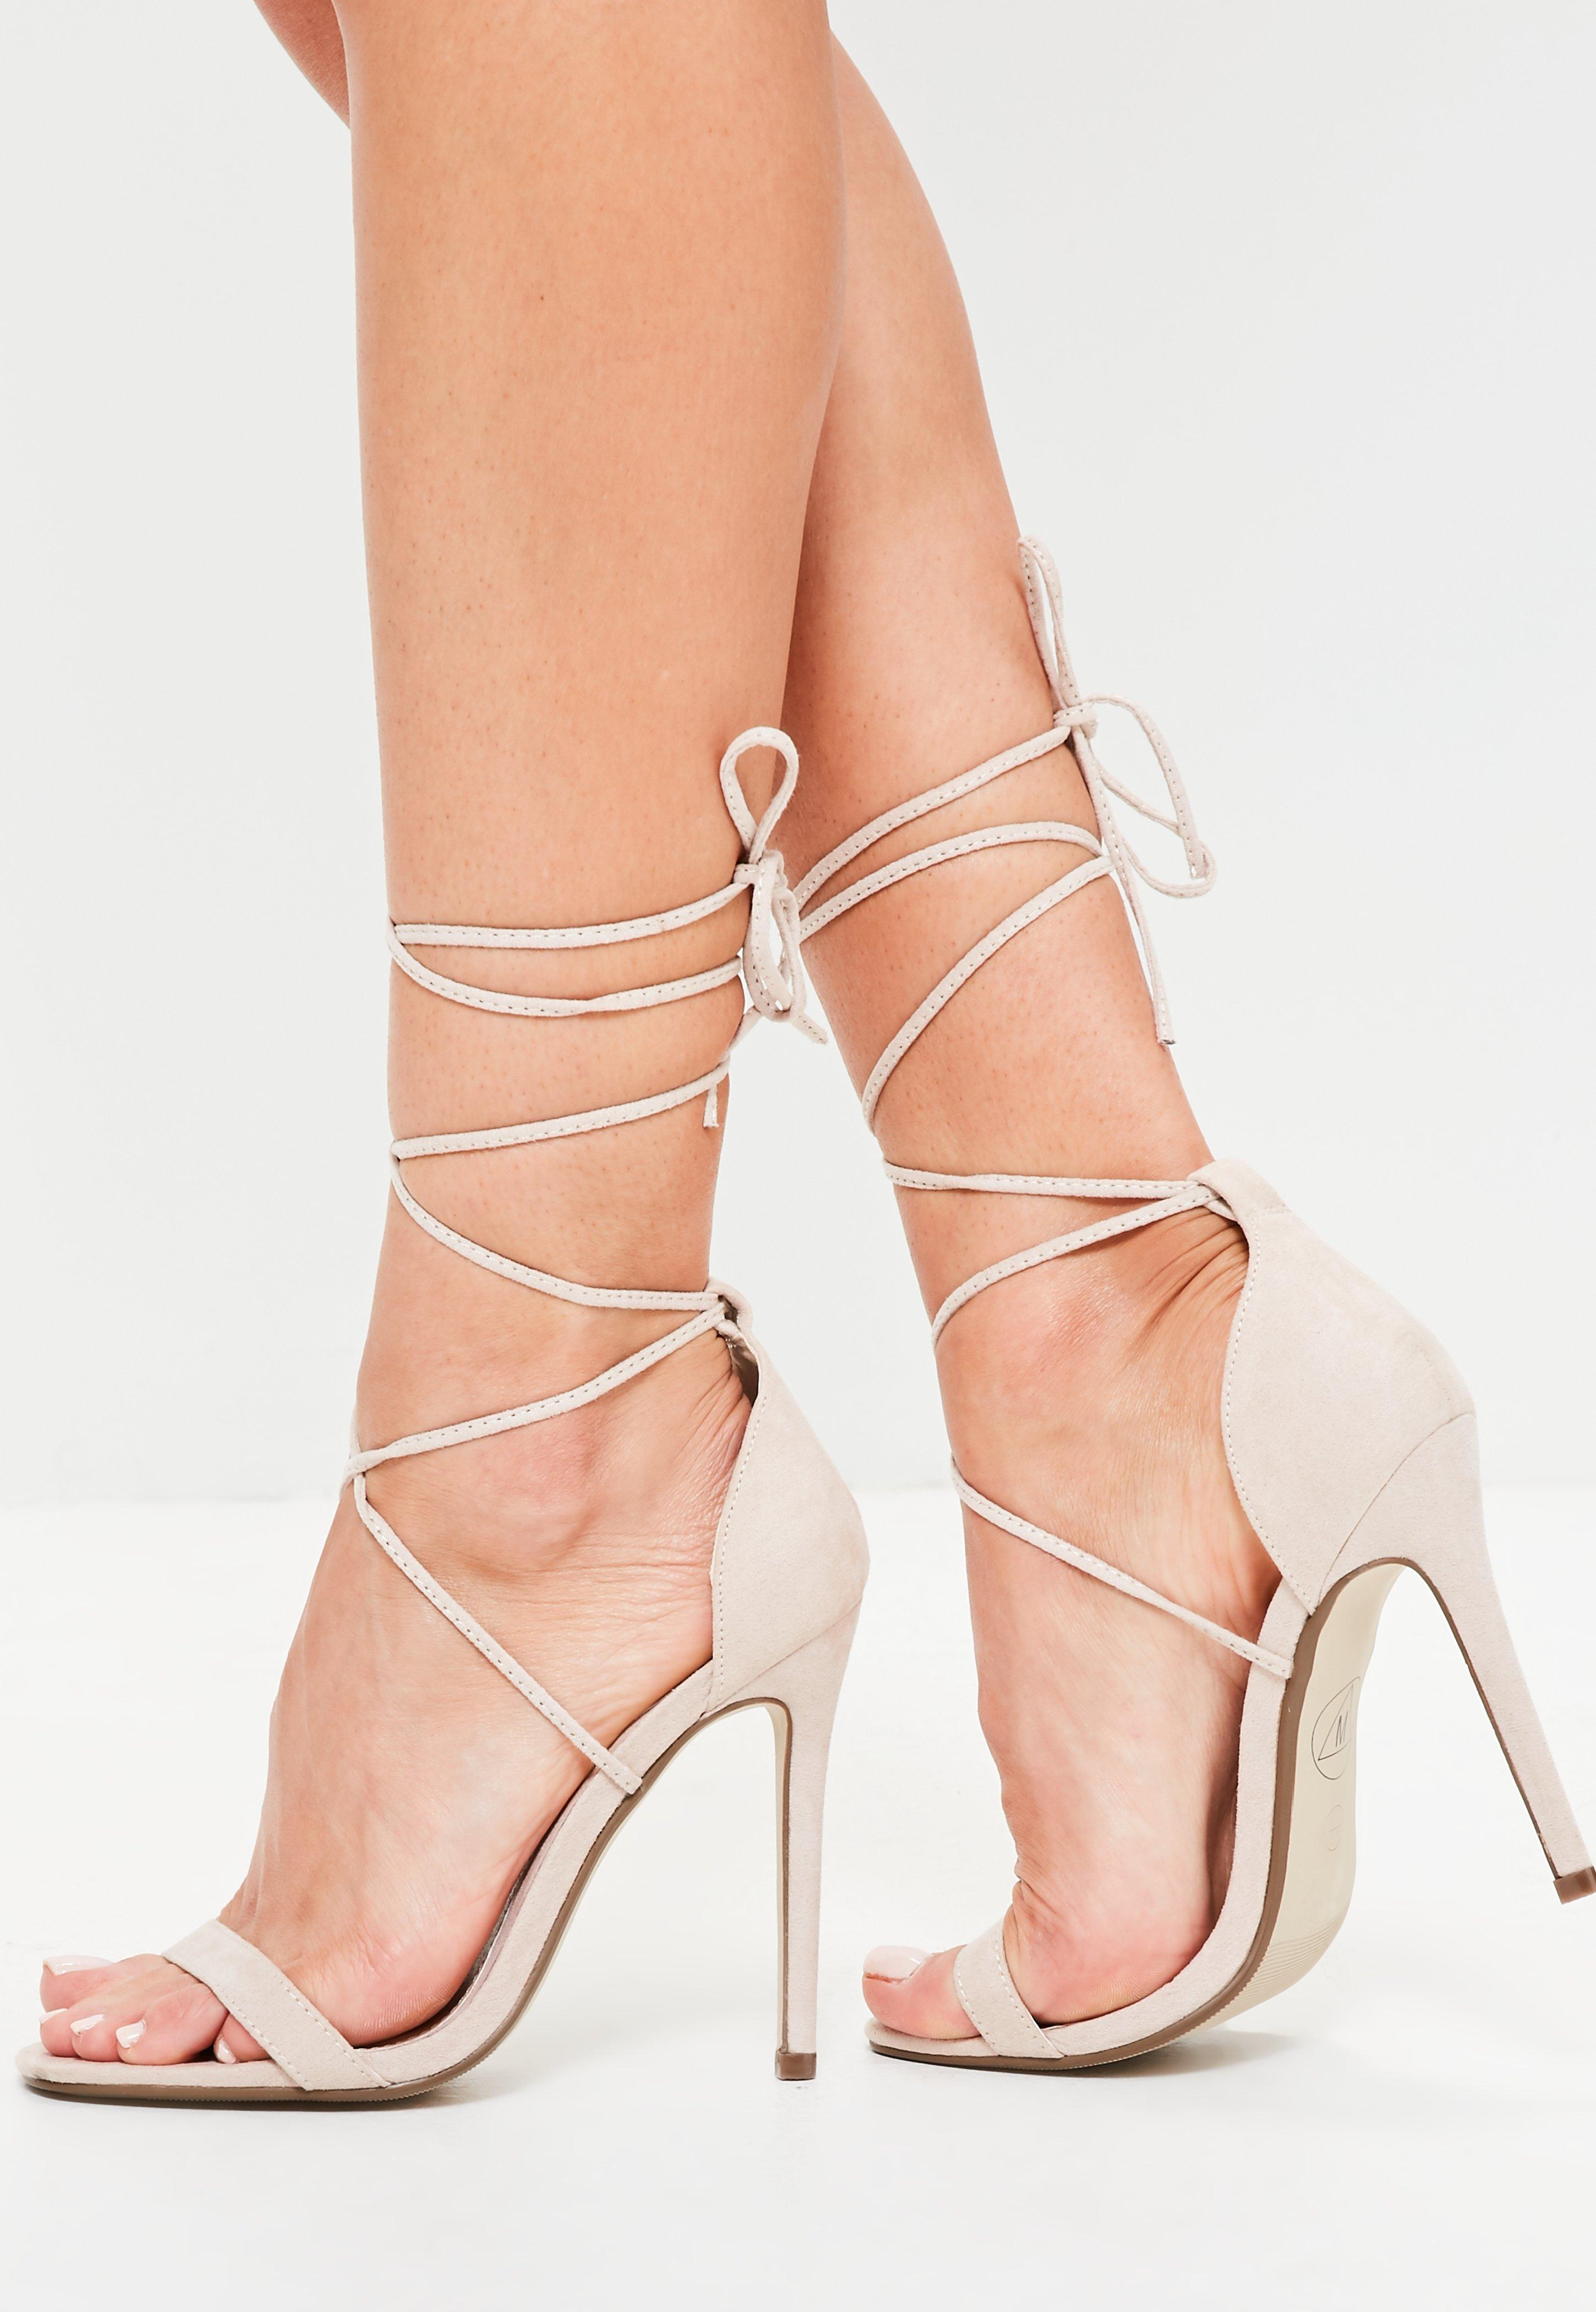 45b6bdfbcbac Lyst - Missguided Lace Up Barely There Heeled Sandals Nude in Natural